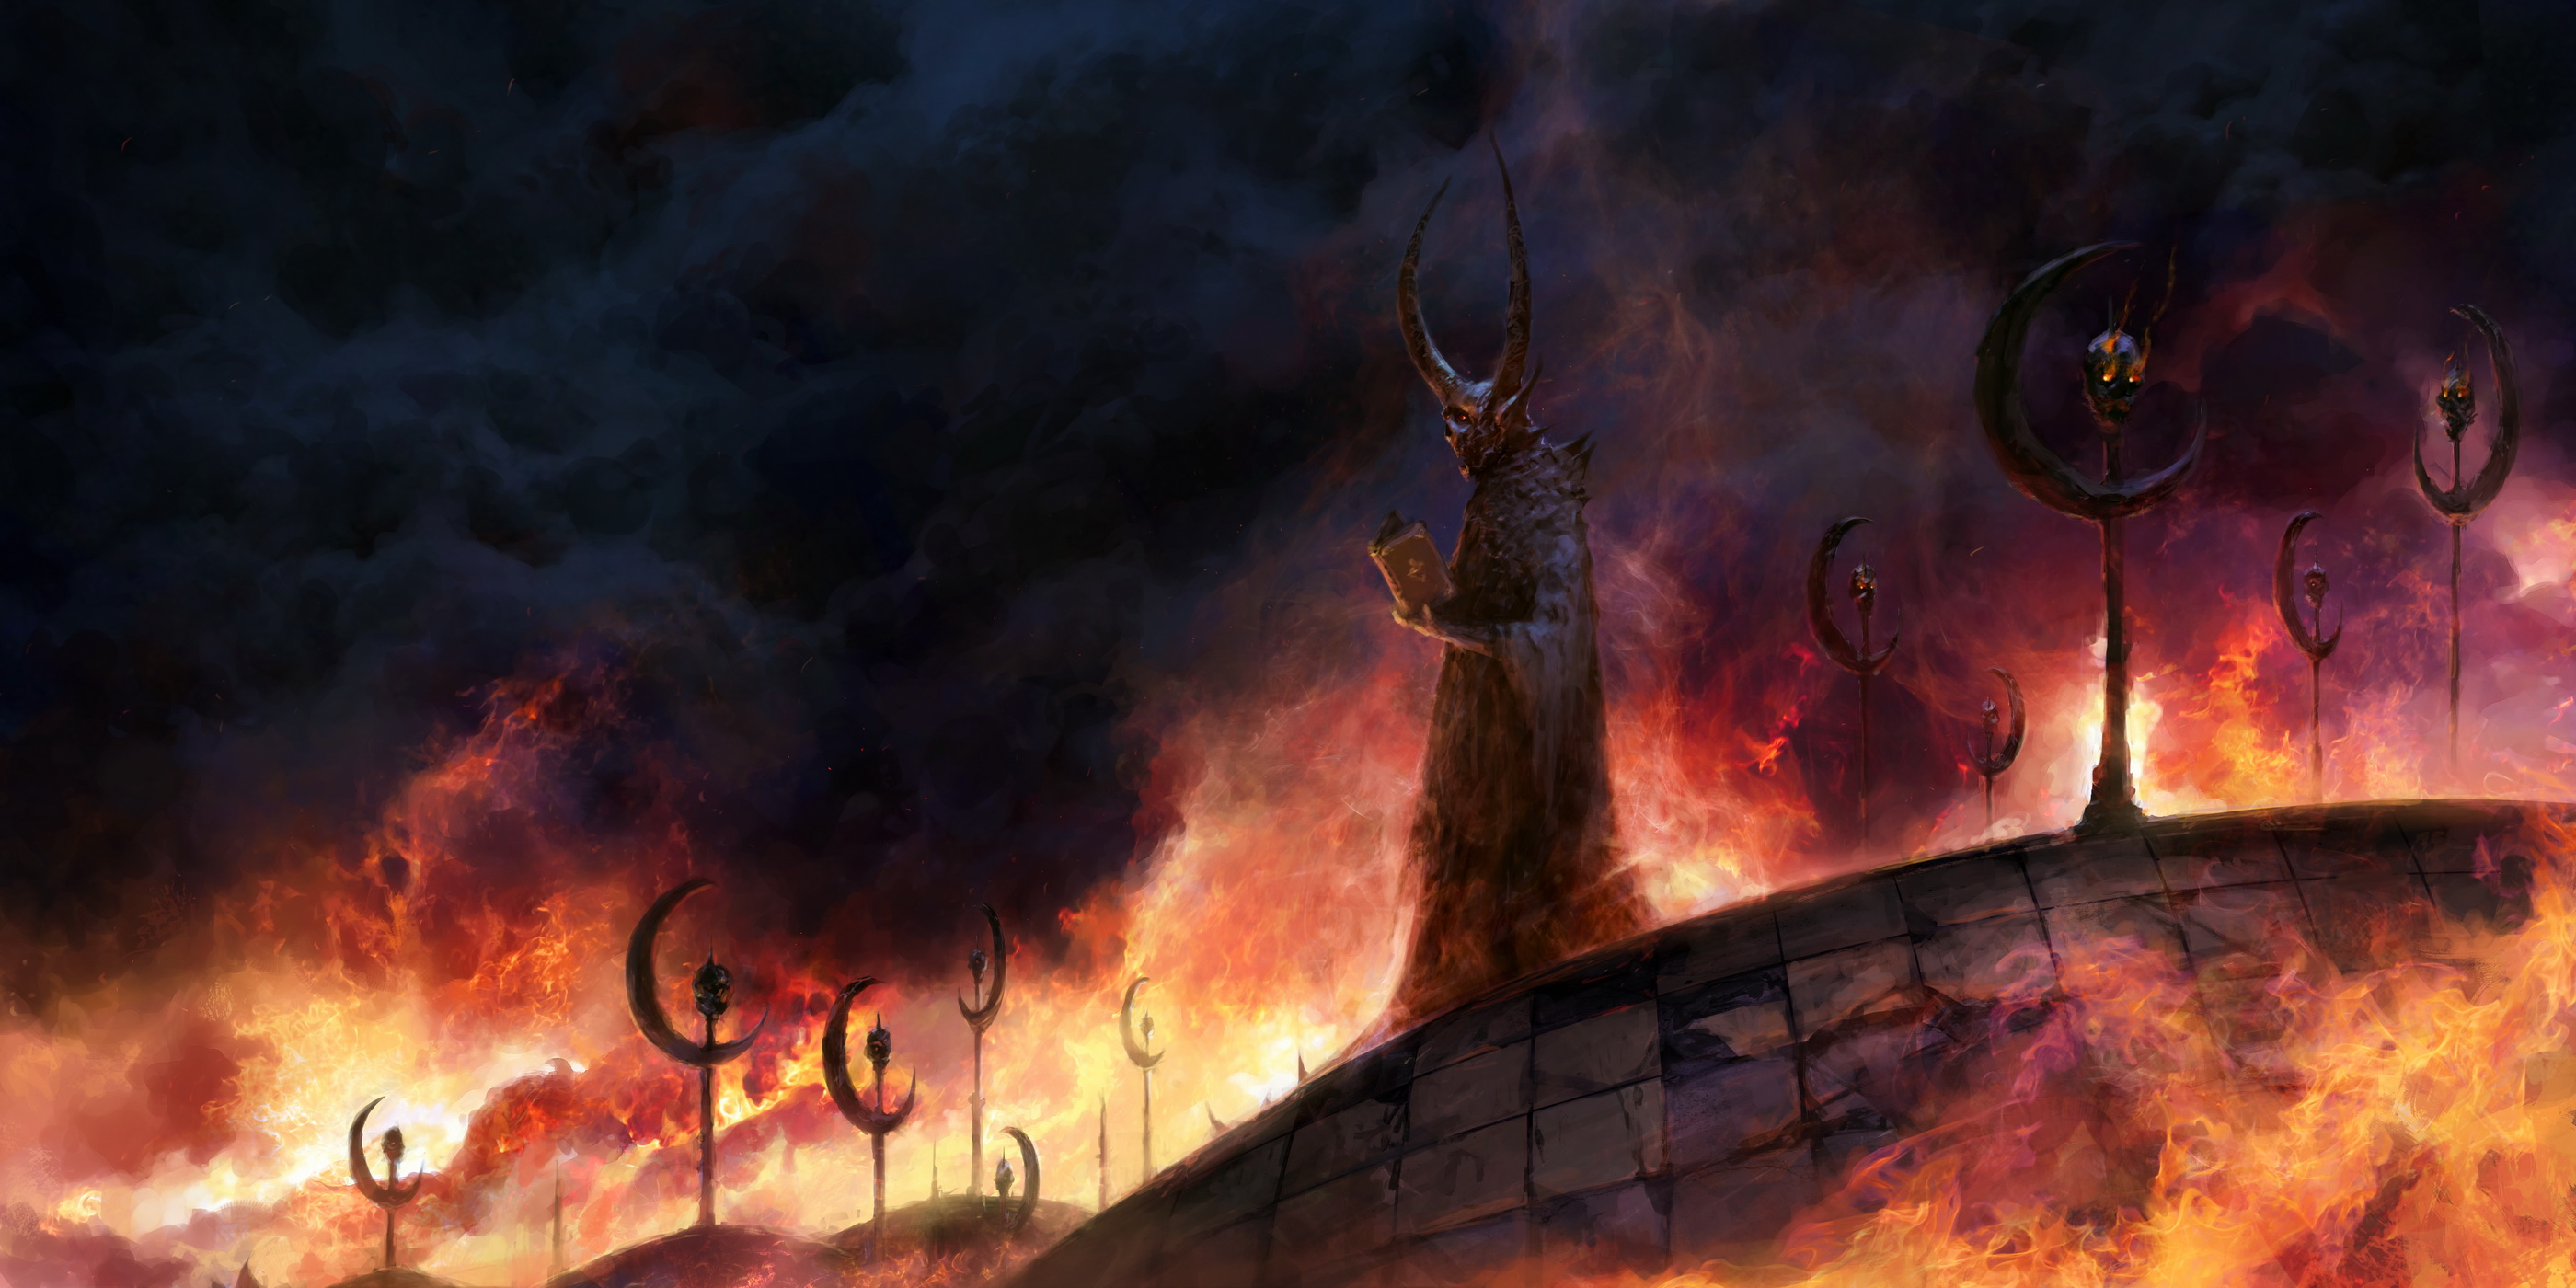 The Final Messiah by ChrisCold